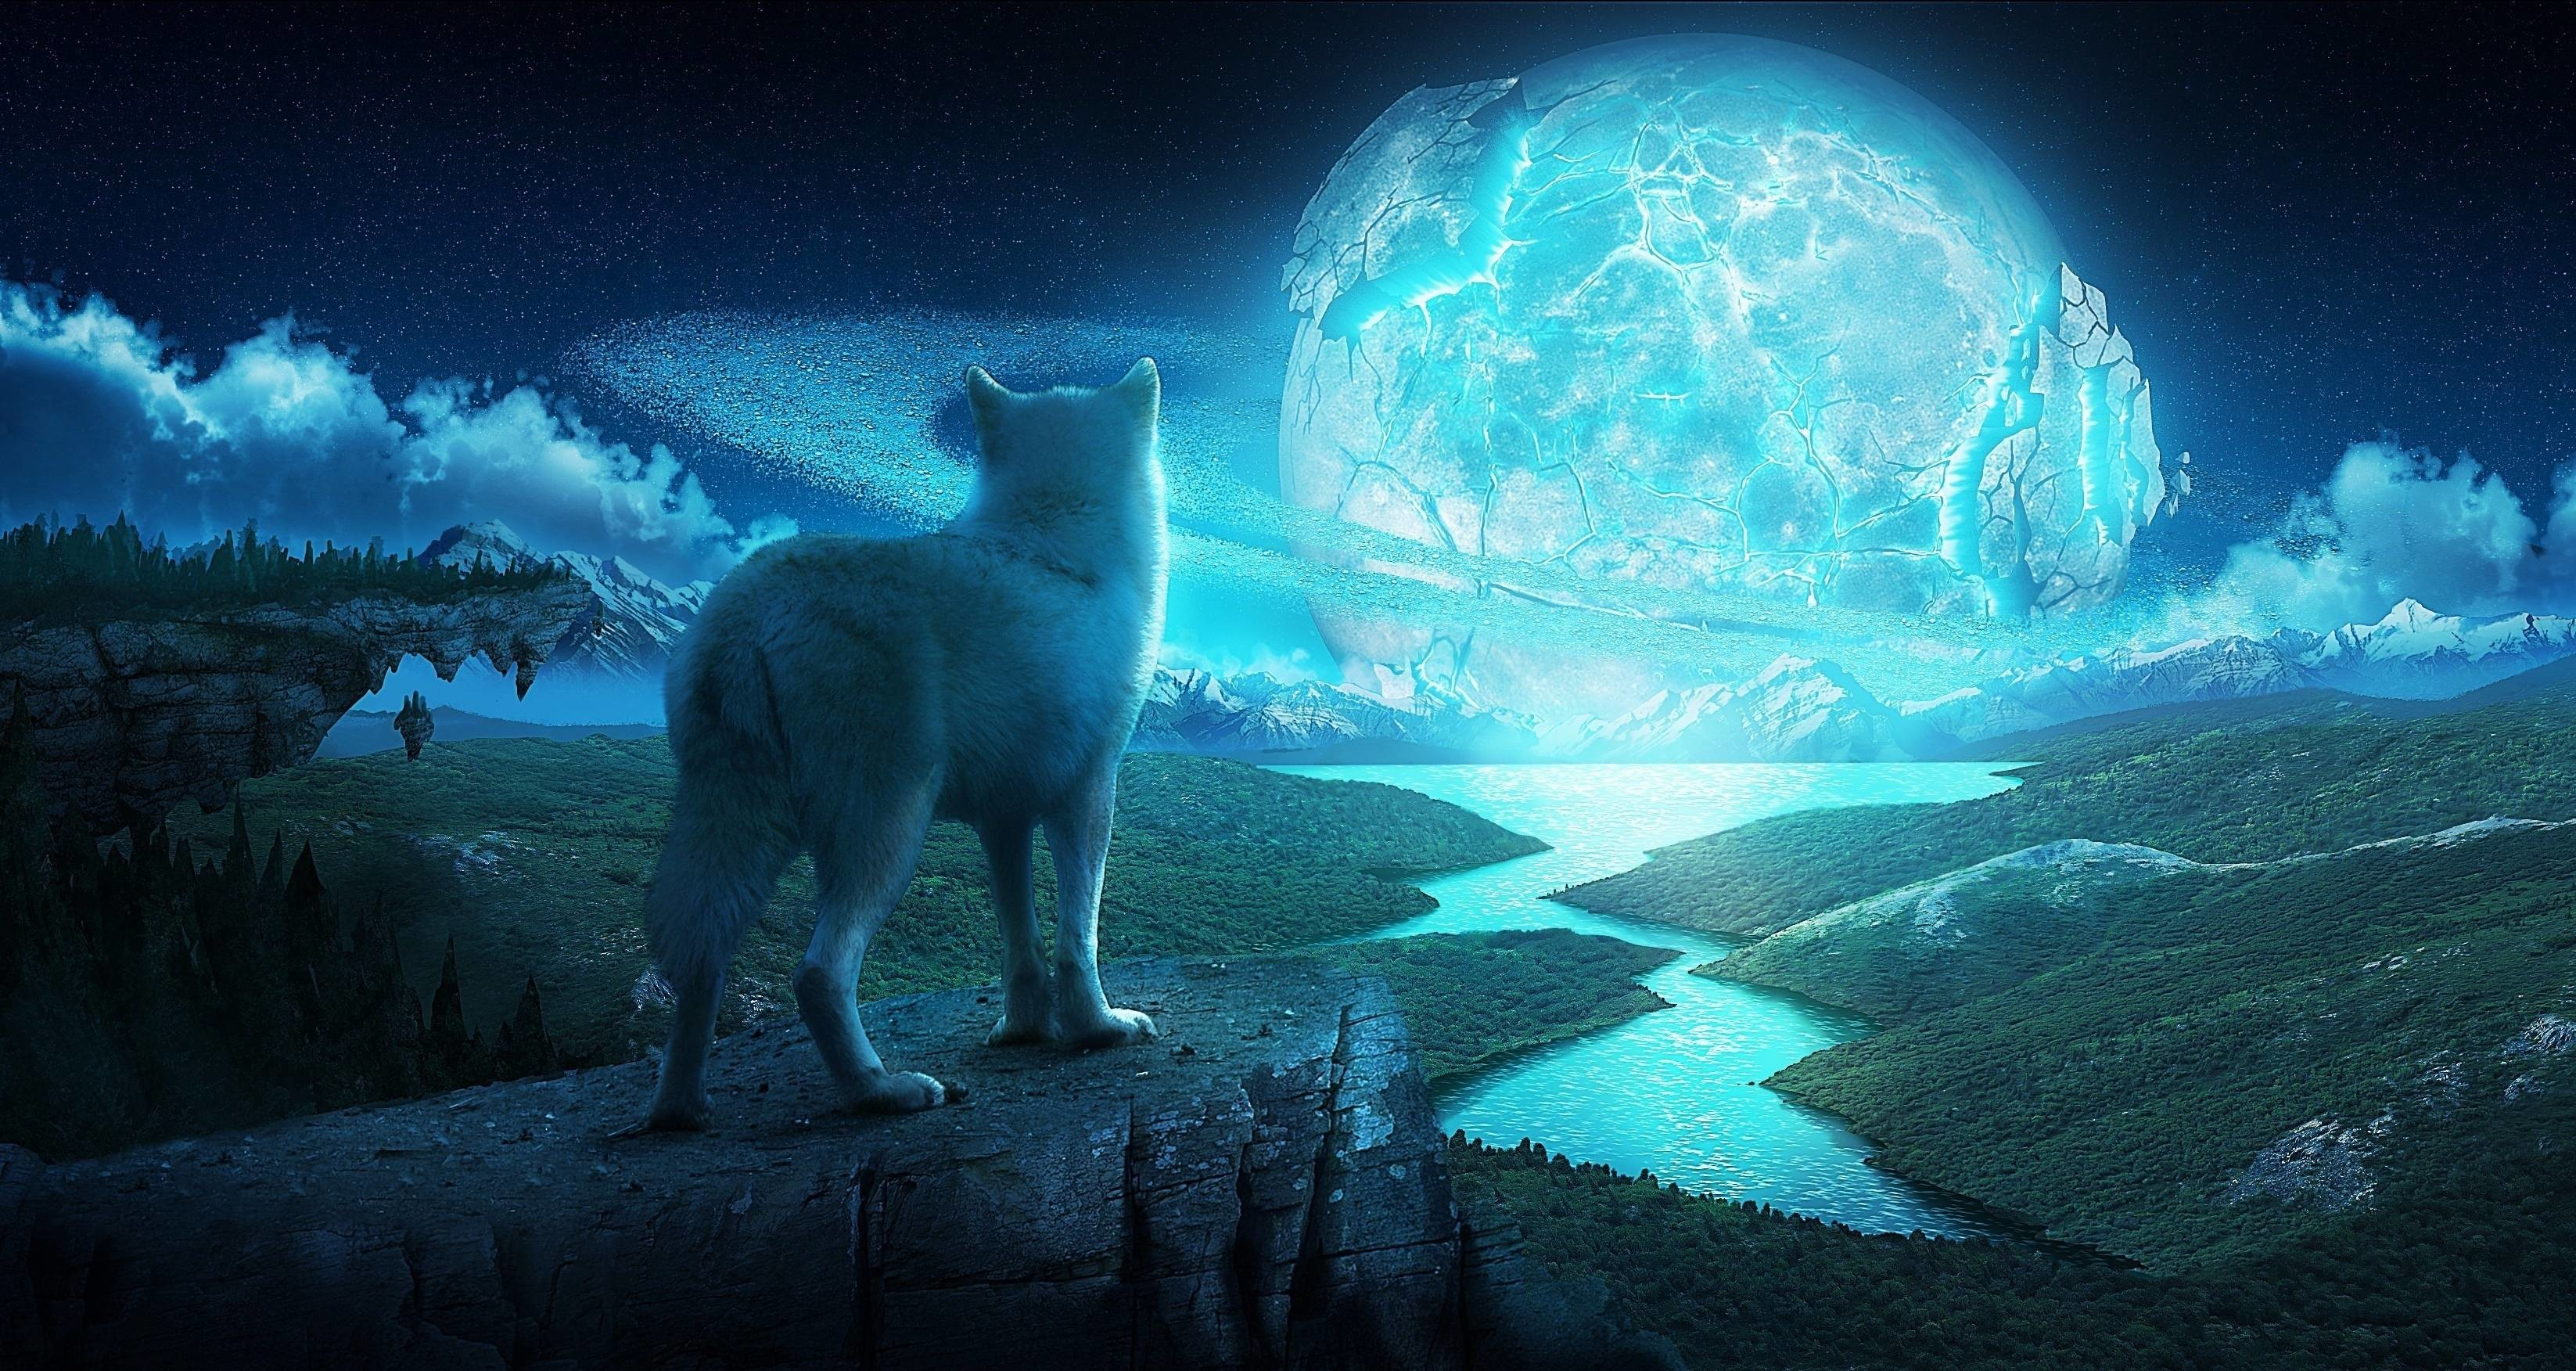 … fantasy wolf wallpapers wallpaper cave …